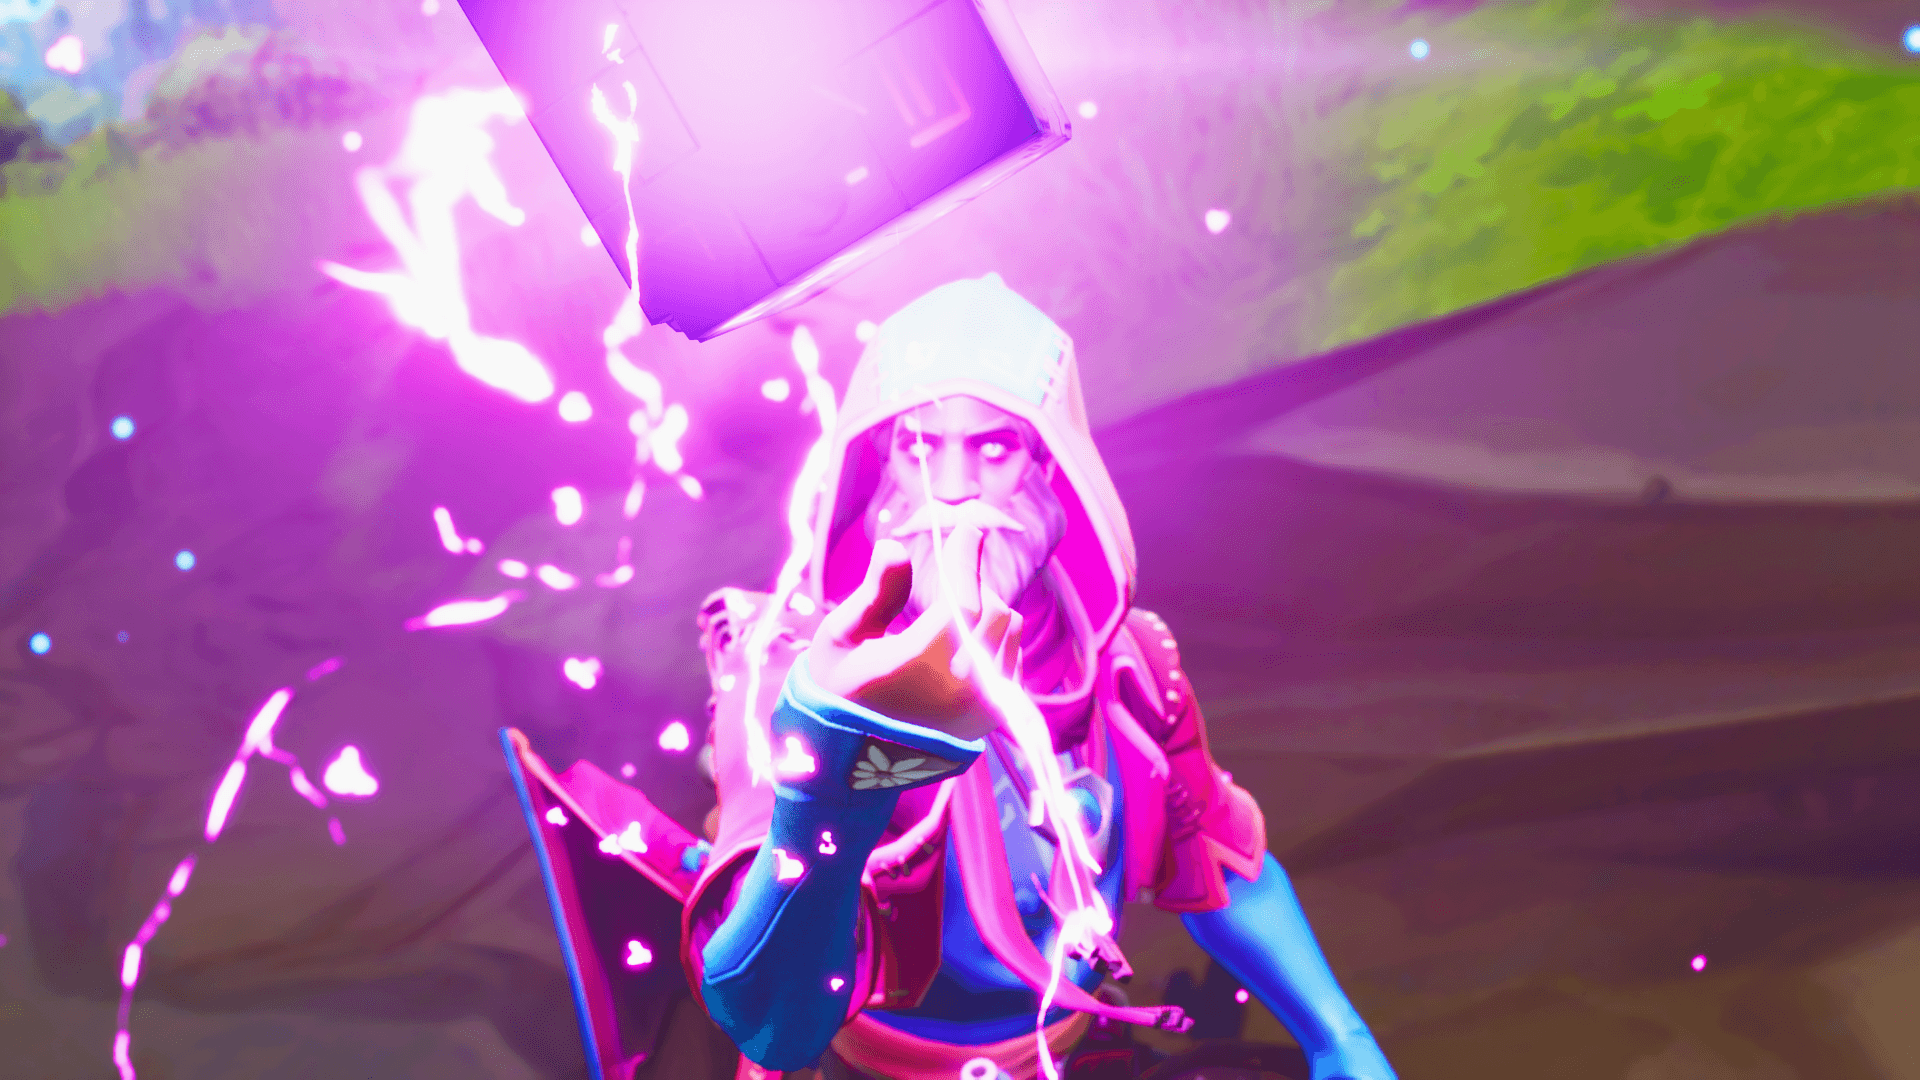 Season 7 Fortnite Wallpapers HD – Download Fortnite Wallpapers